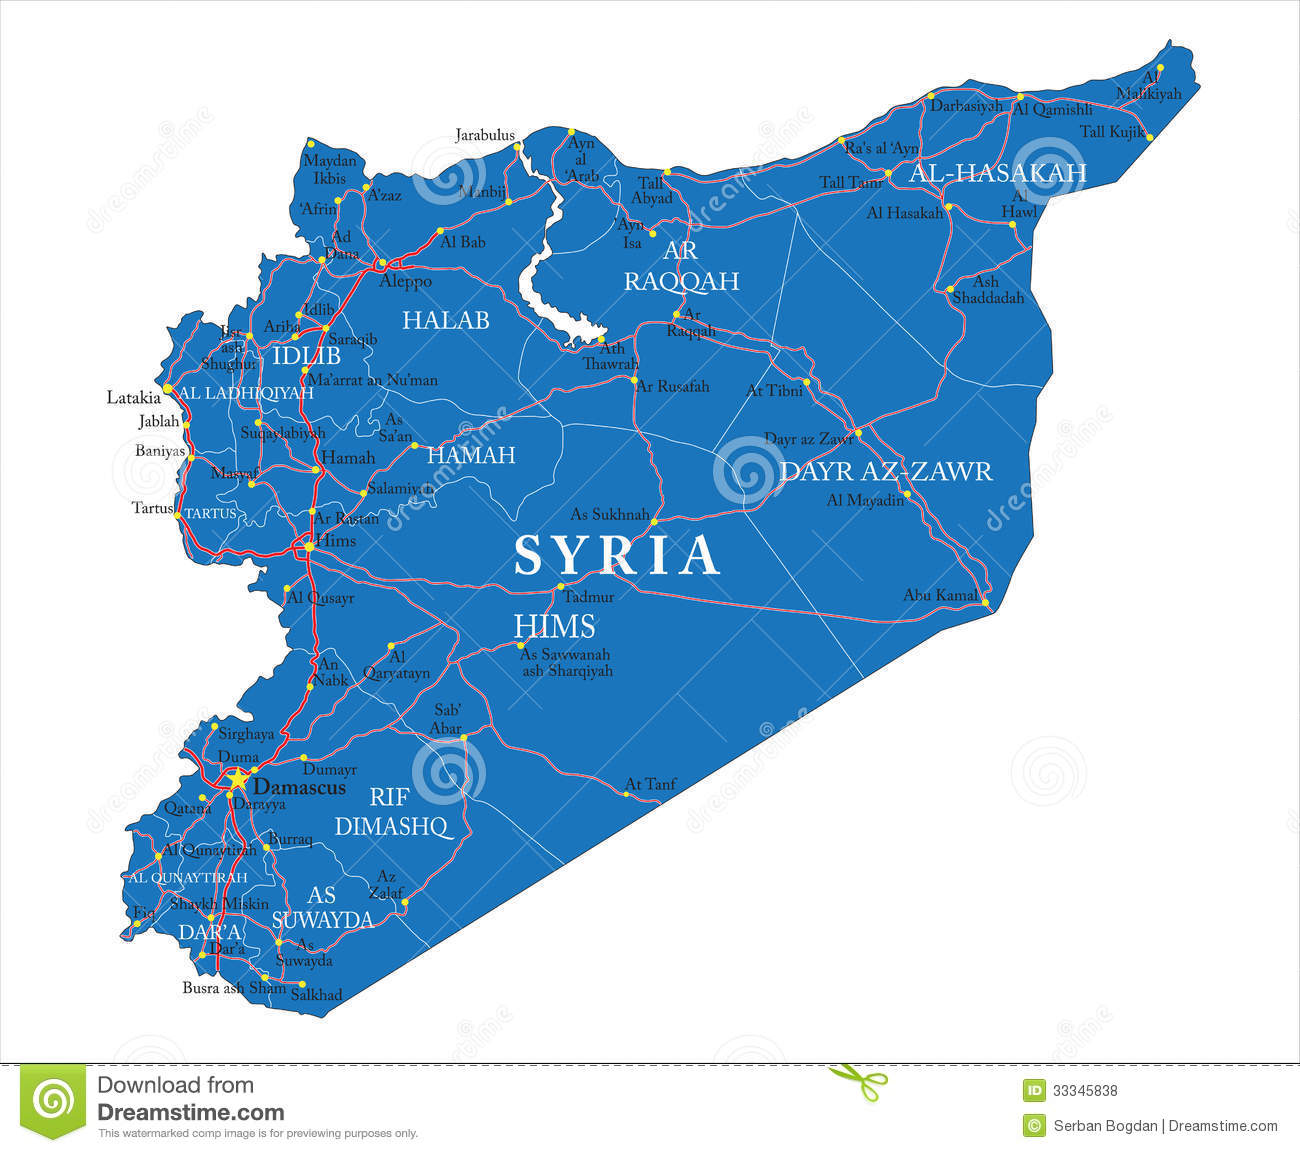 ... map of Syria with administrative regions, main cities and roads